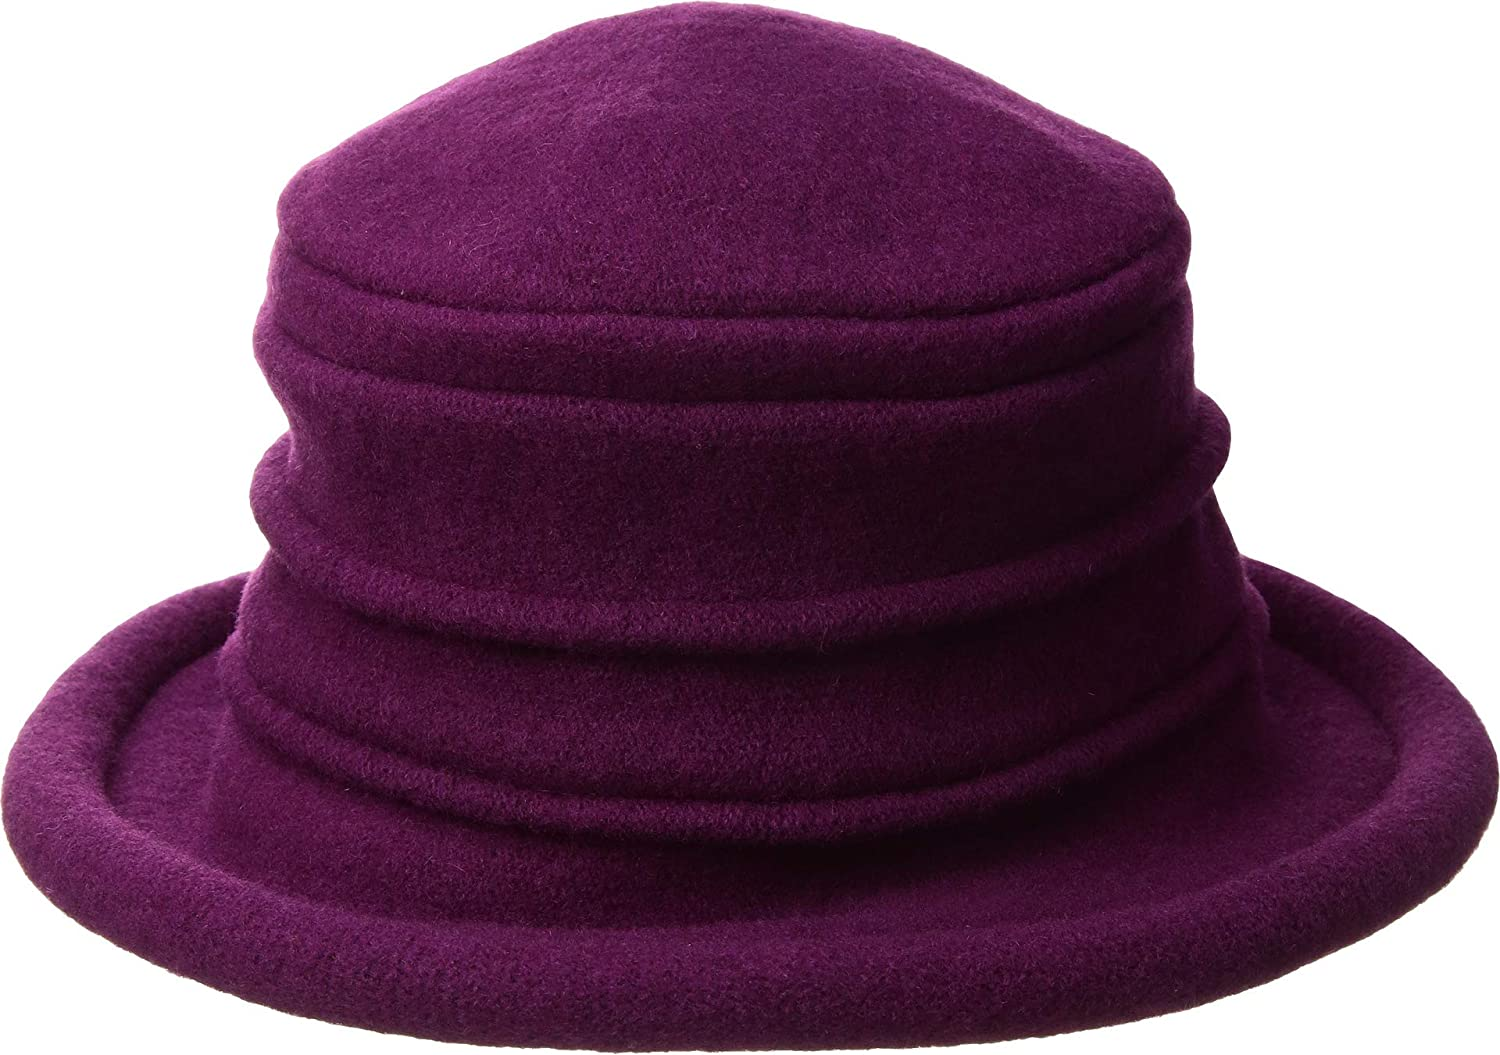 200b96334b9 Scala collezione womens packable wool cloche hat fuchsia os at amazon  womens clothing store jpg 1500x1055